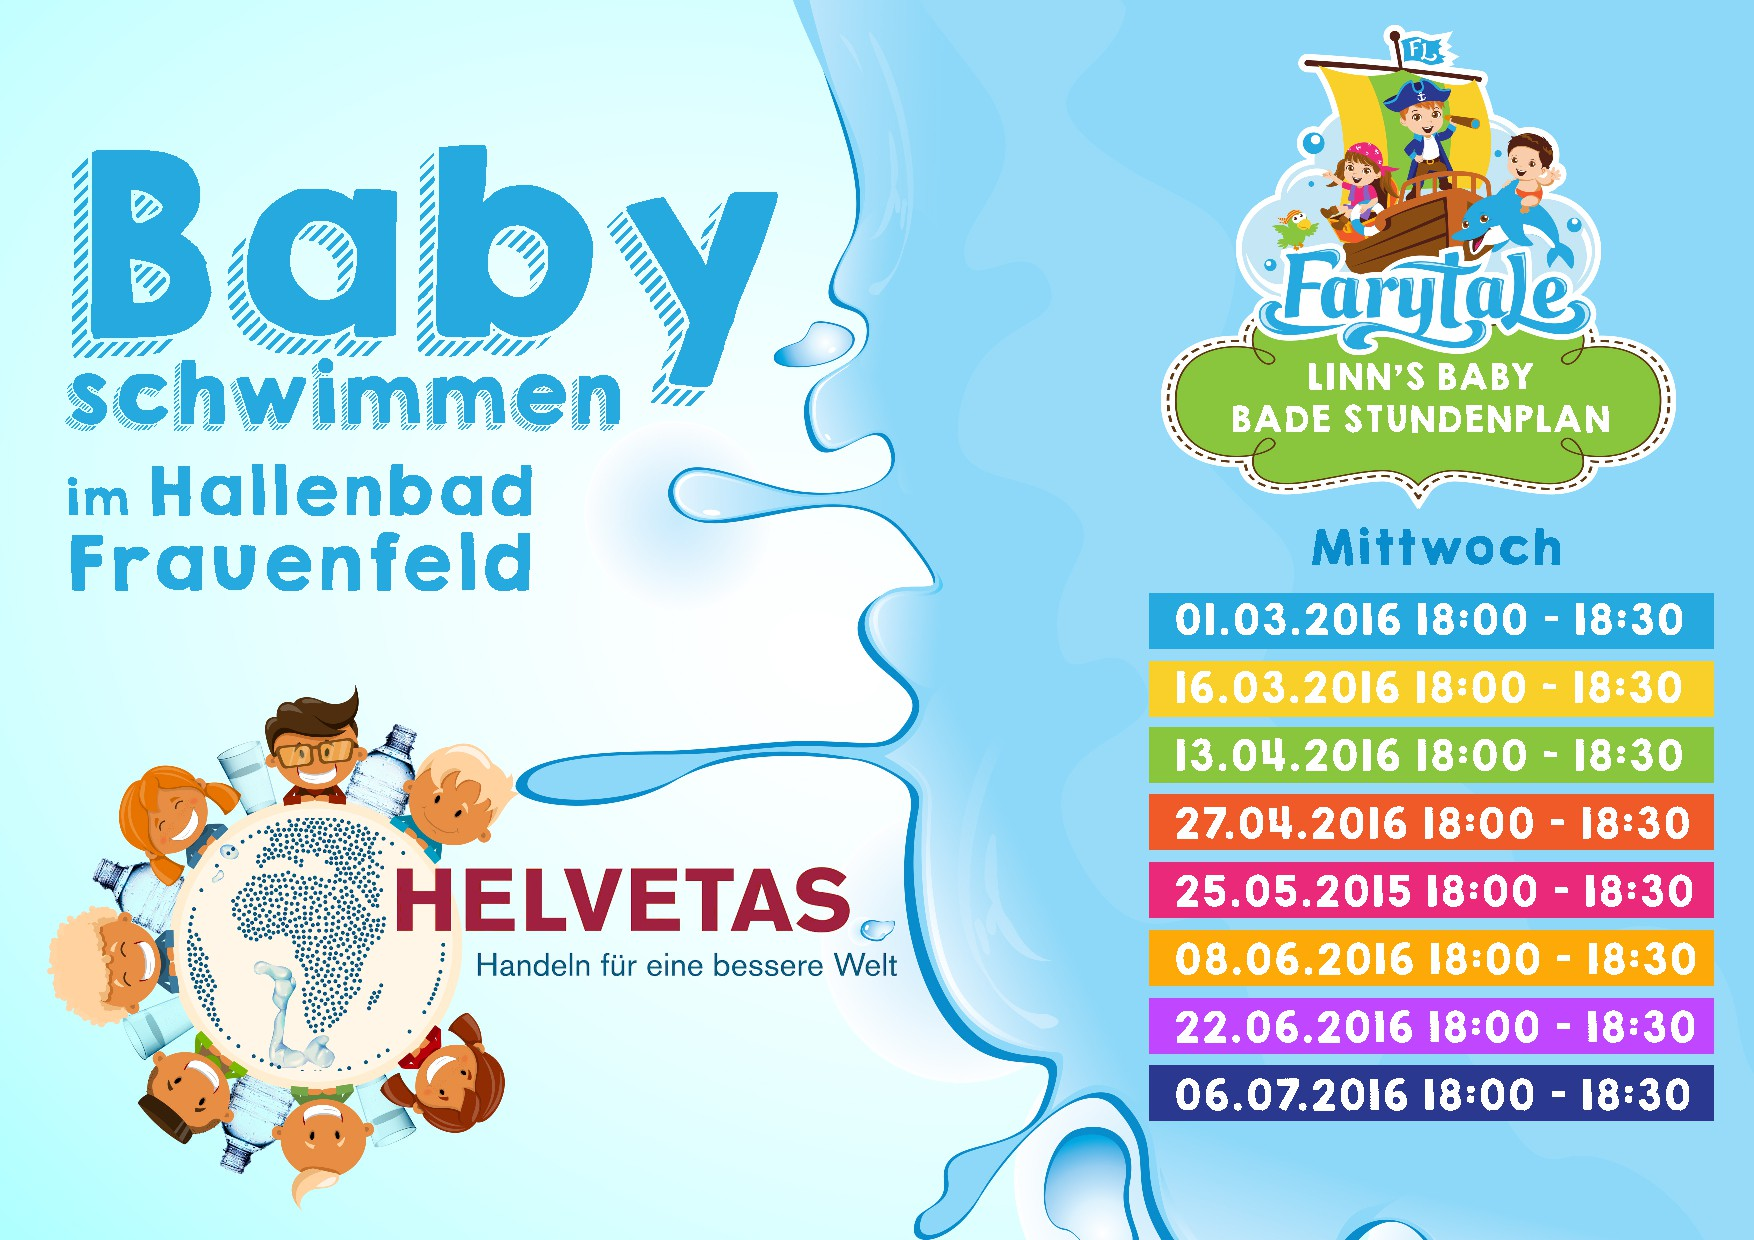 The New FarytaLe timetable